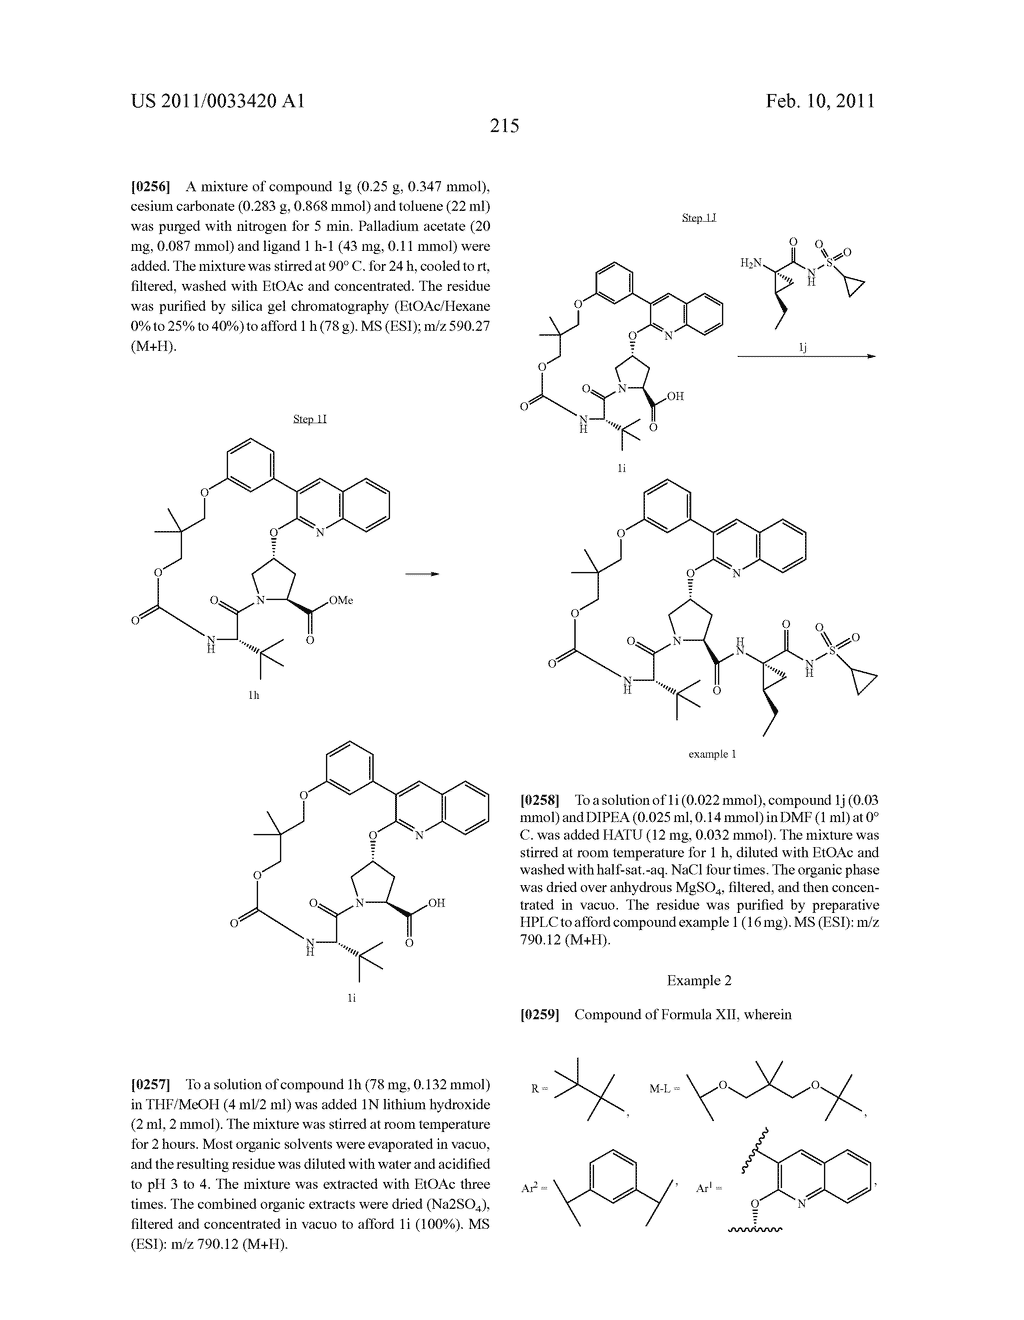 MACROCYCLIC COMPOUNDS AS HEPATITIS C VIRUS INHIBITORS - diagram, schematic, and image 216